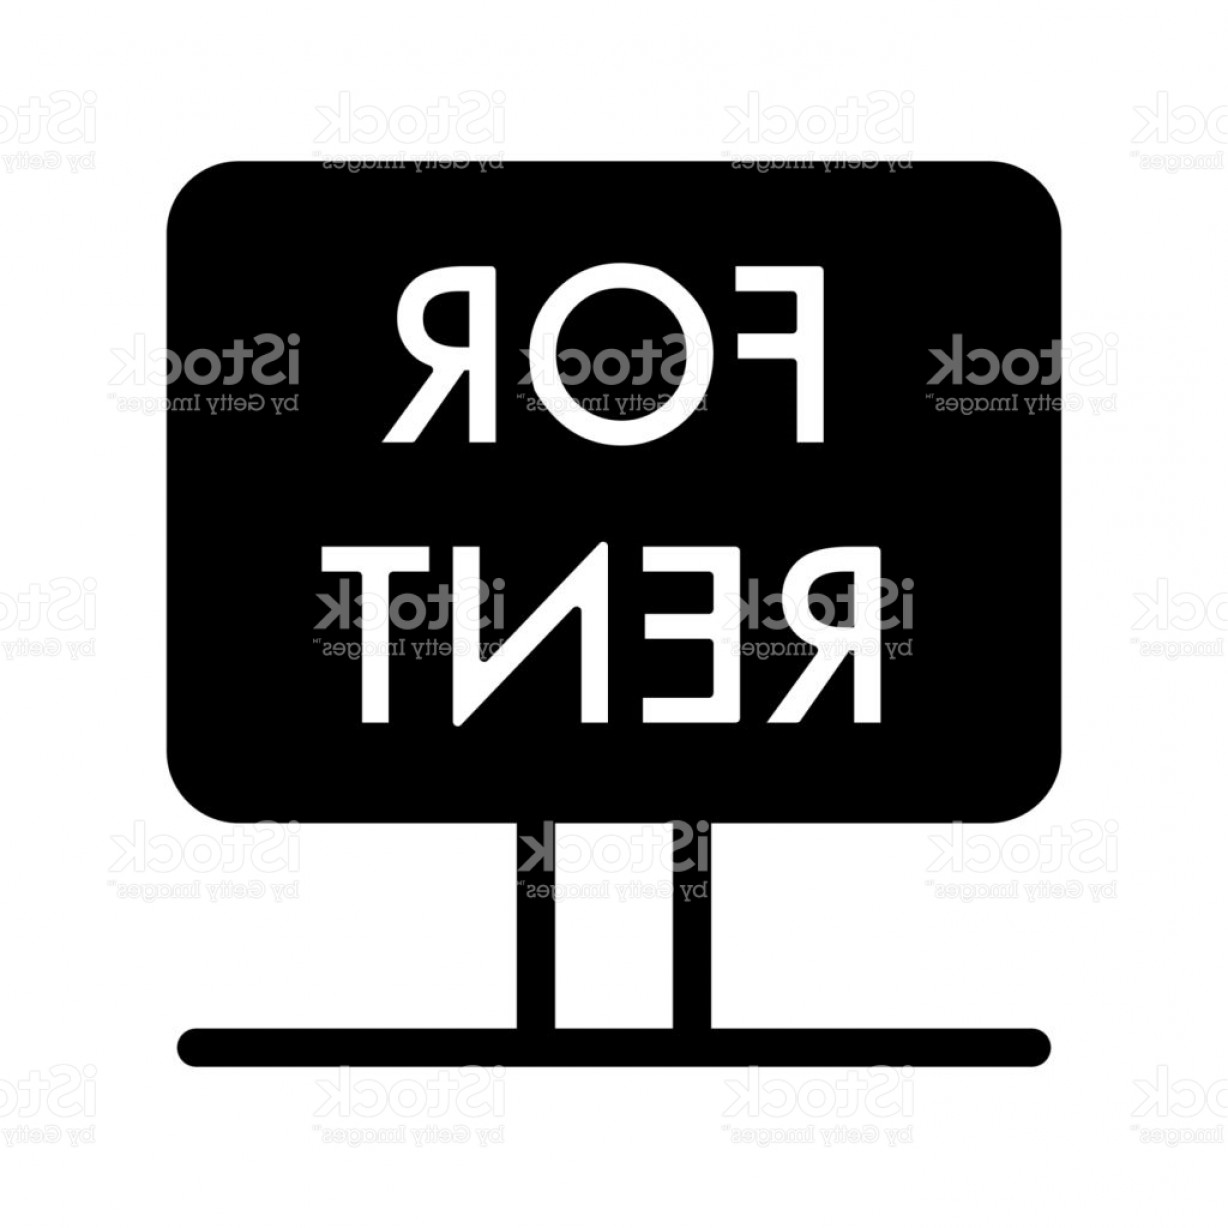 Nameplate Vector Graphics: Rent Symbol Simple Vector Icon Black And White Illustration Of Rent Nameplate Solid Gm